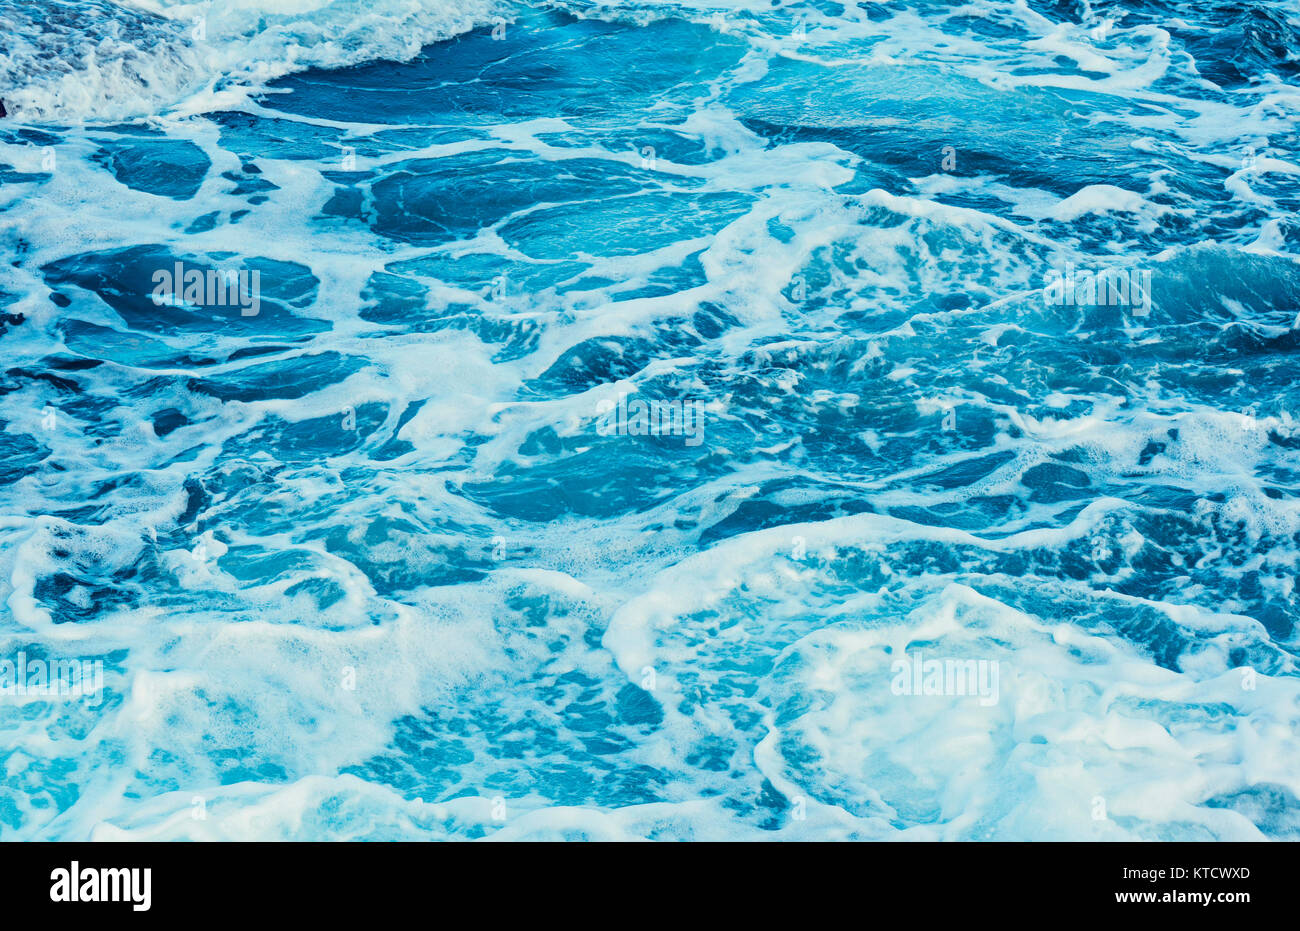 Aqua blue sea water - Stock Image